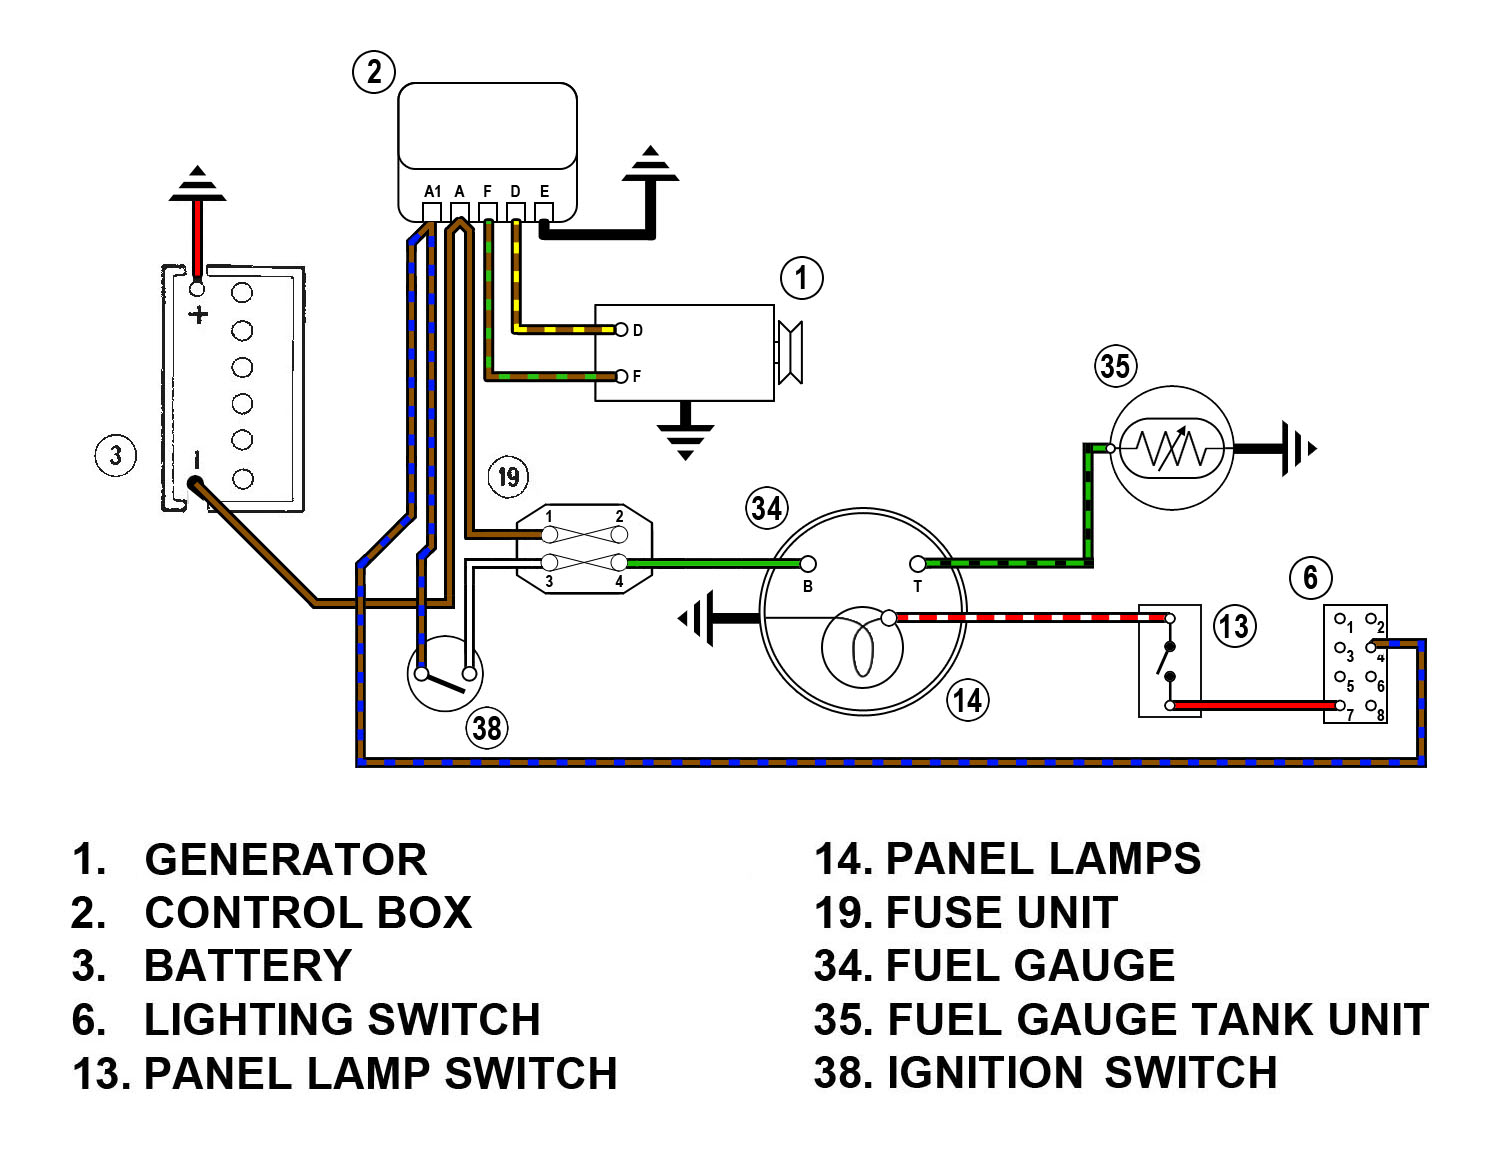 FuelGaugeWiringSpMkII_MGMkI fuel gauge wiring schematic fuel level circuit \u2022 wiring diagrams Fuel Trim Explained at edmiracle.co